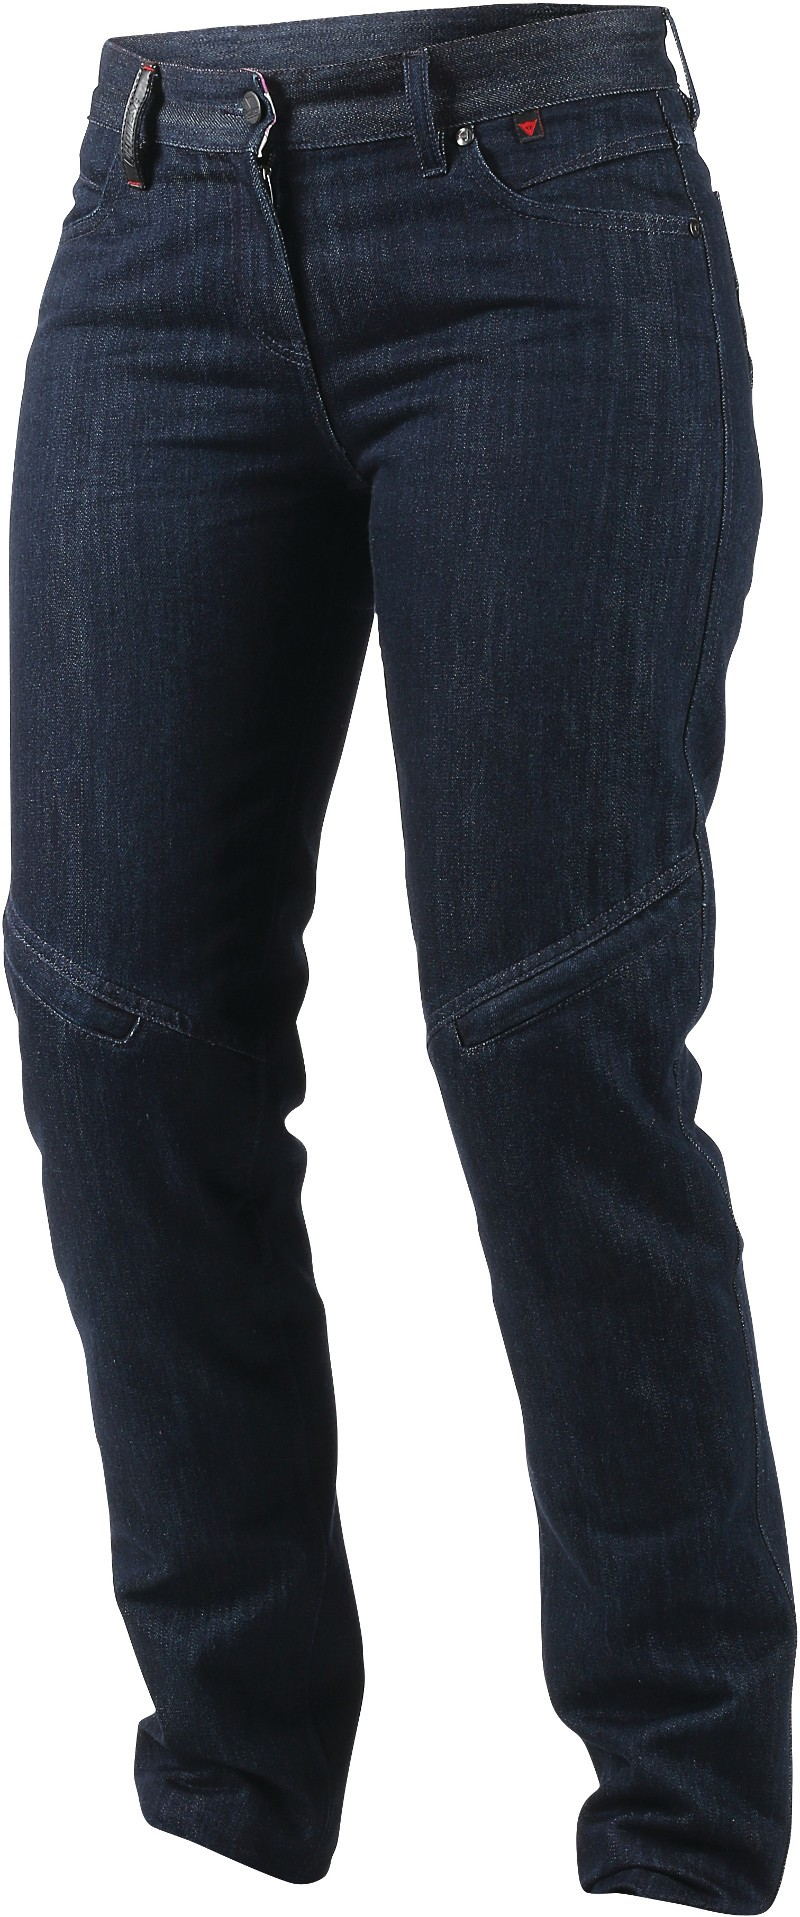 Dianese Ladies Queensville Jeans